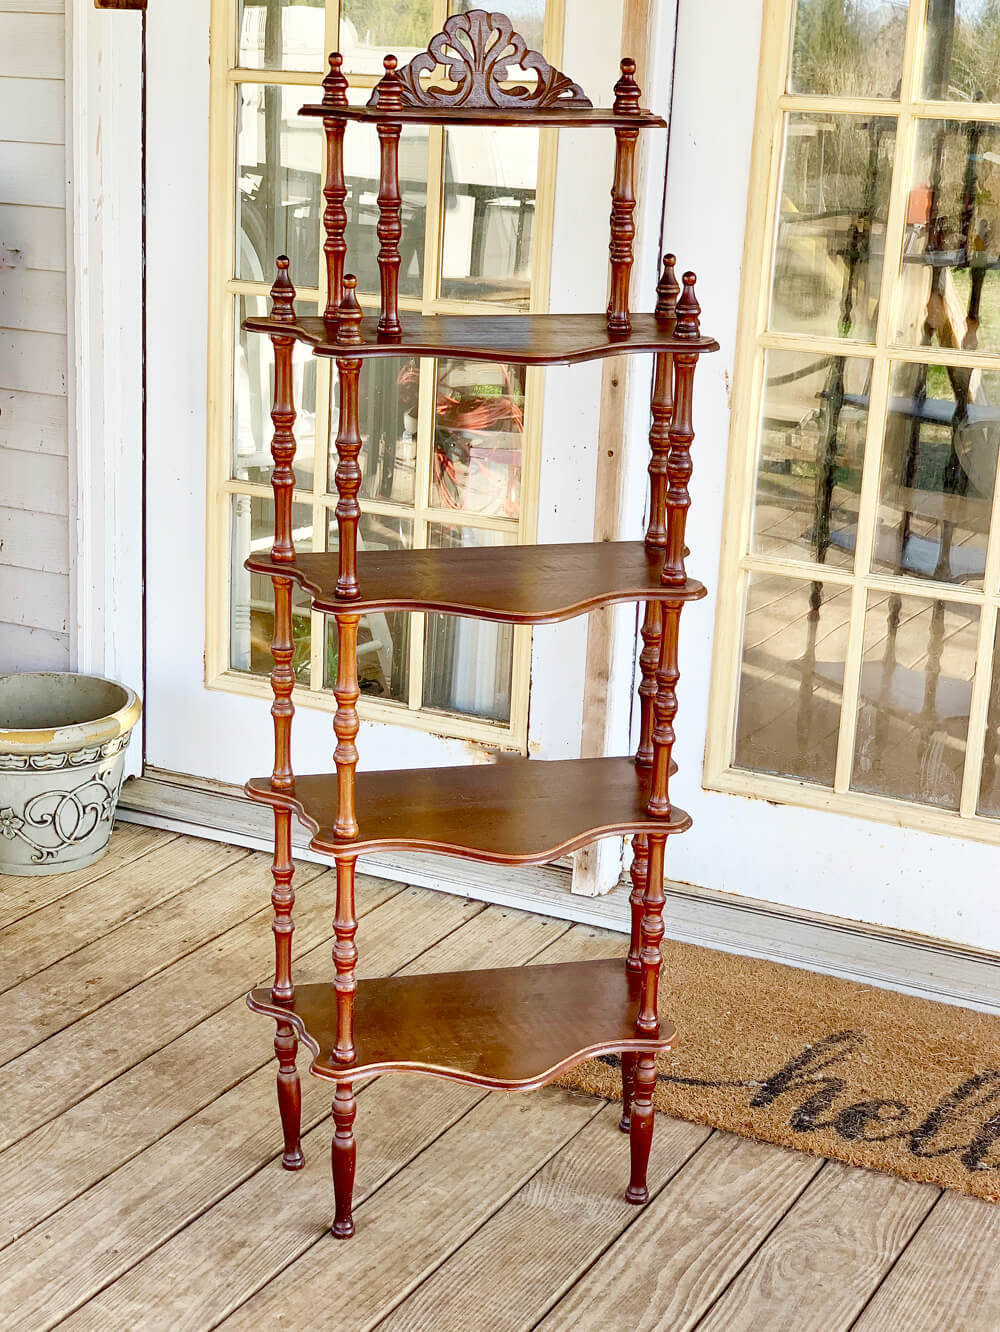 A tall vintage wooden shelf in need of a fun update.